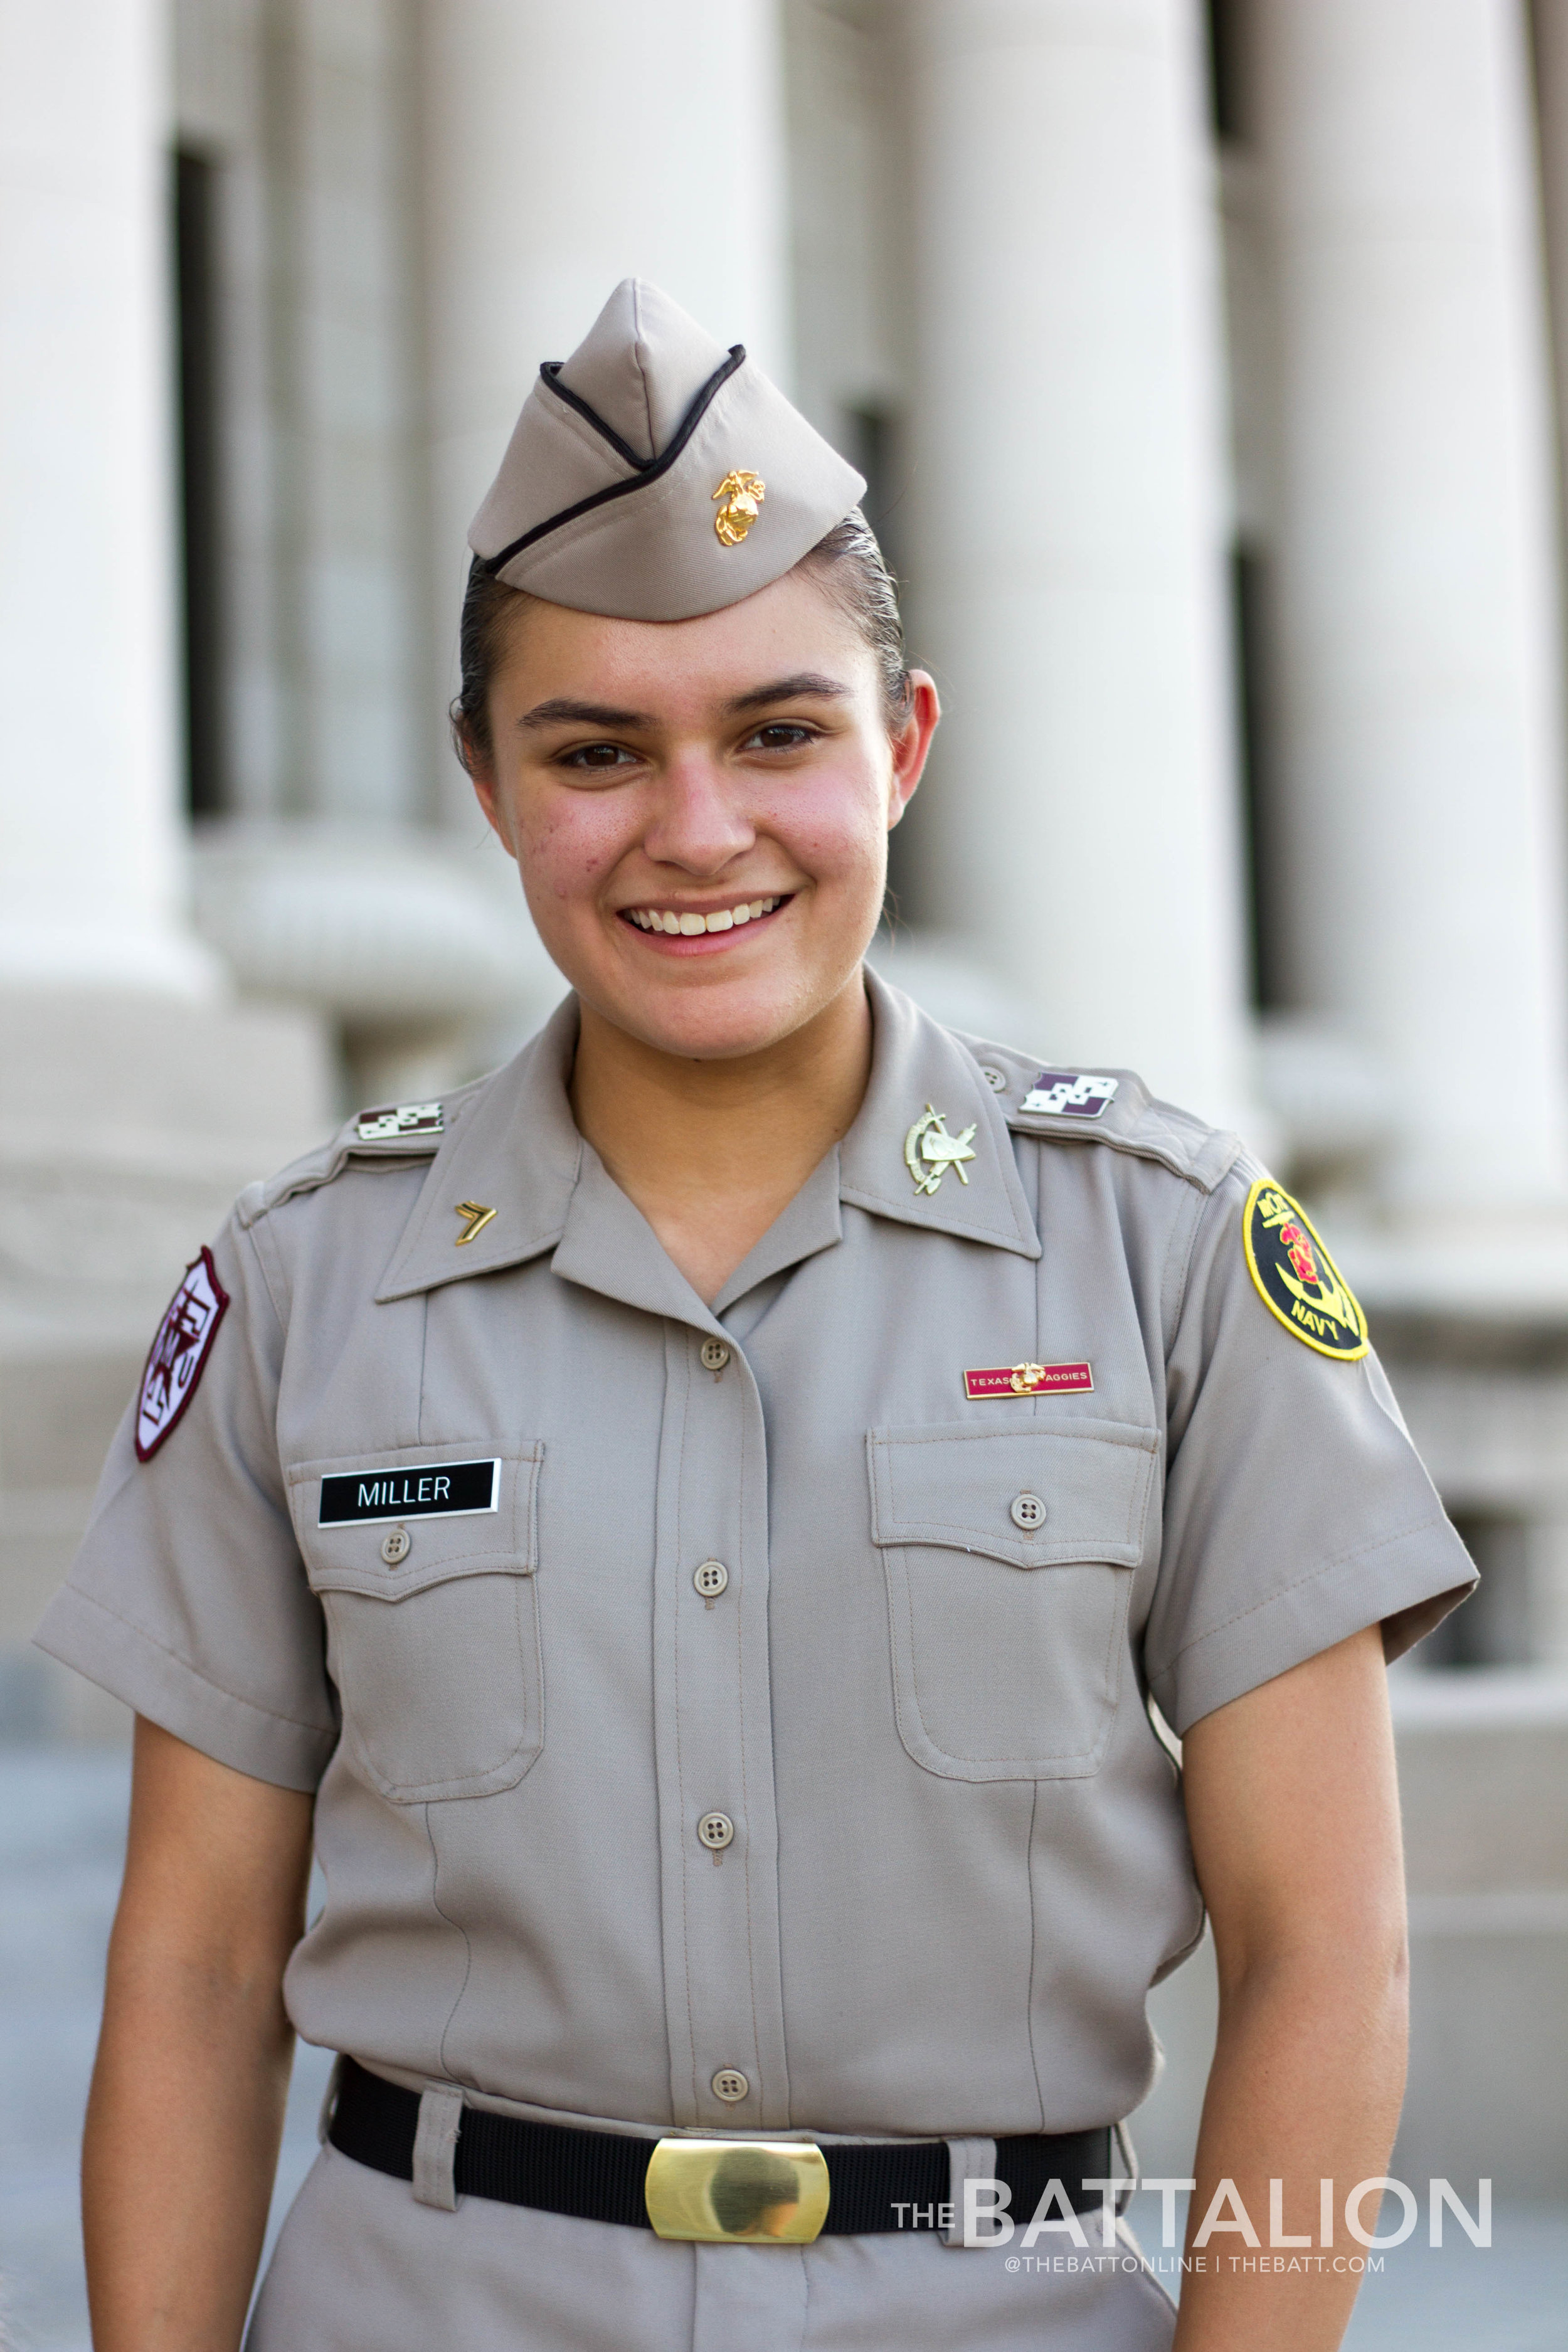 Biology sophomore Mia Miller was named Mascot Corporal in April of 2018. She is now preparing to pass the leash along to her successor.   Photo by Meredith Seaver.